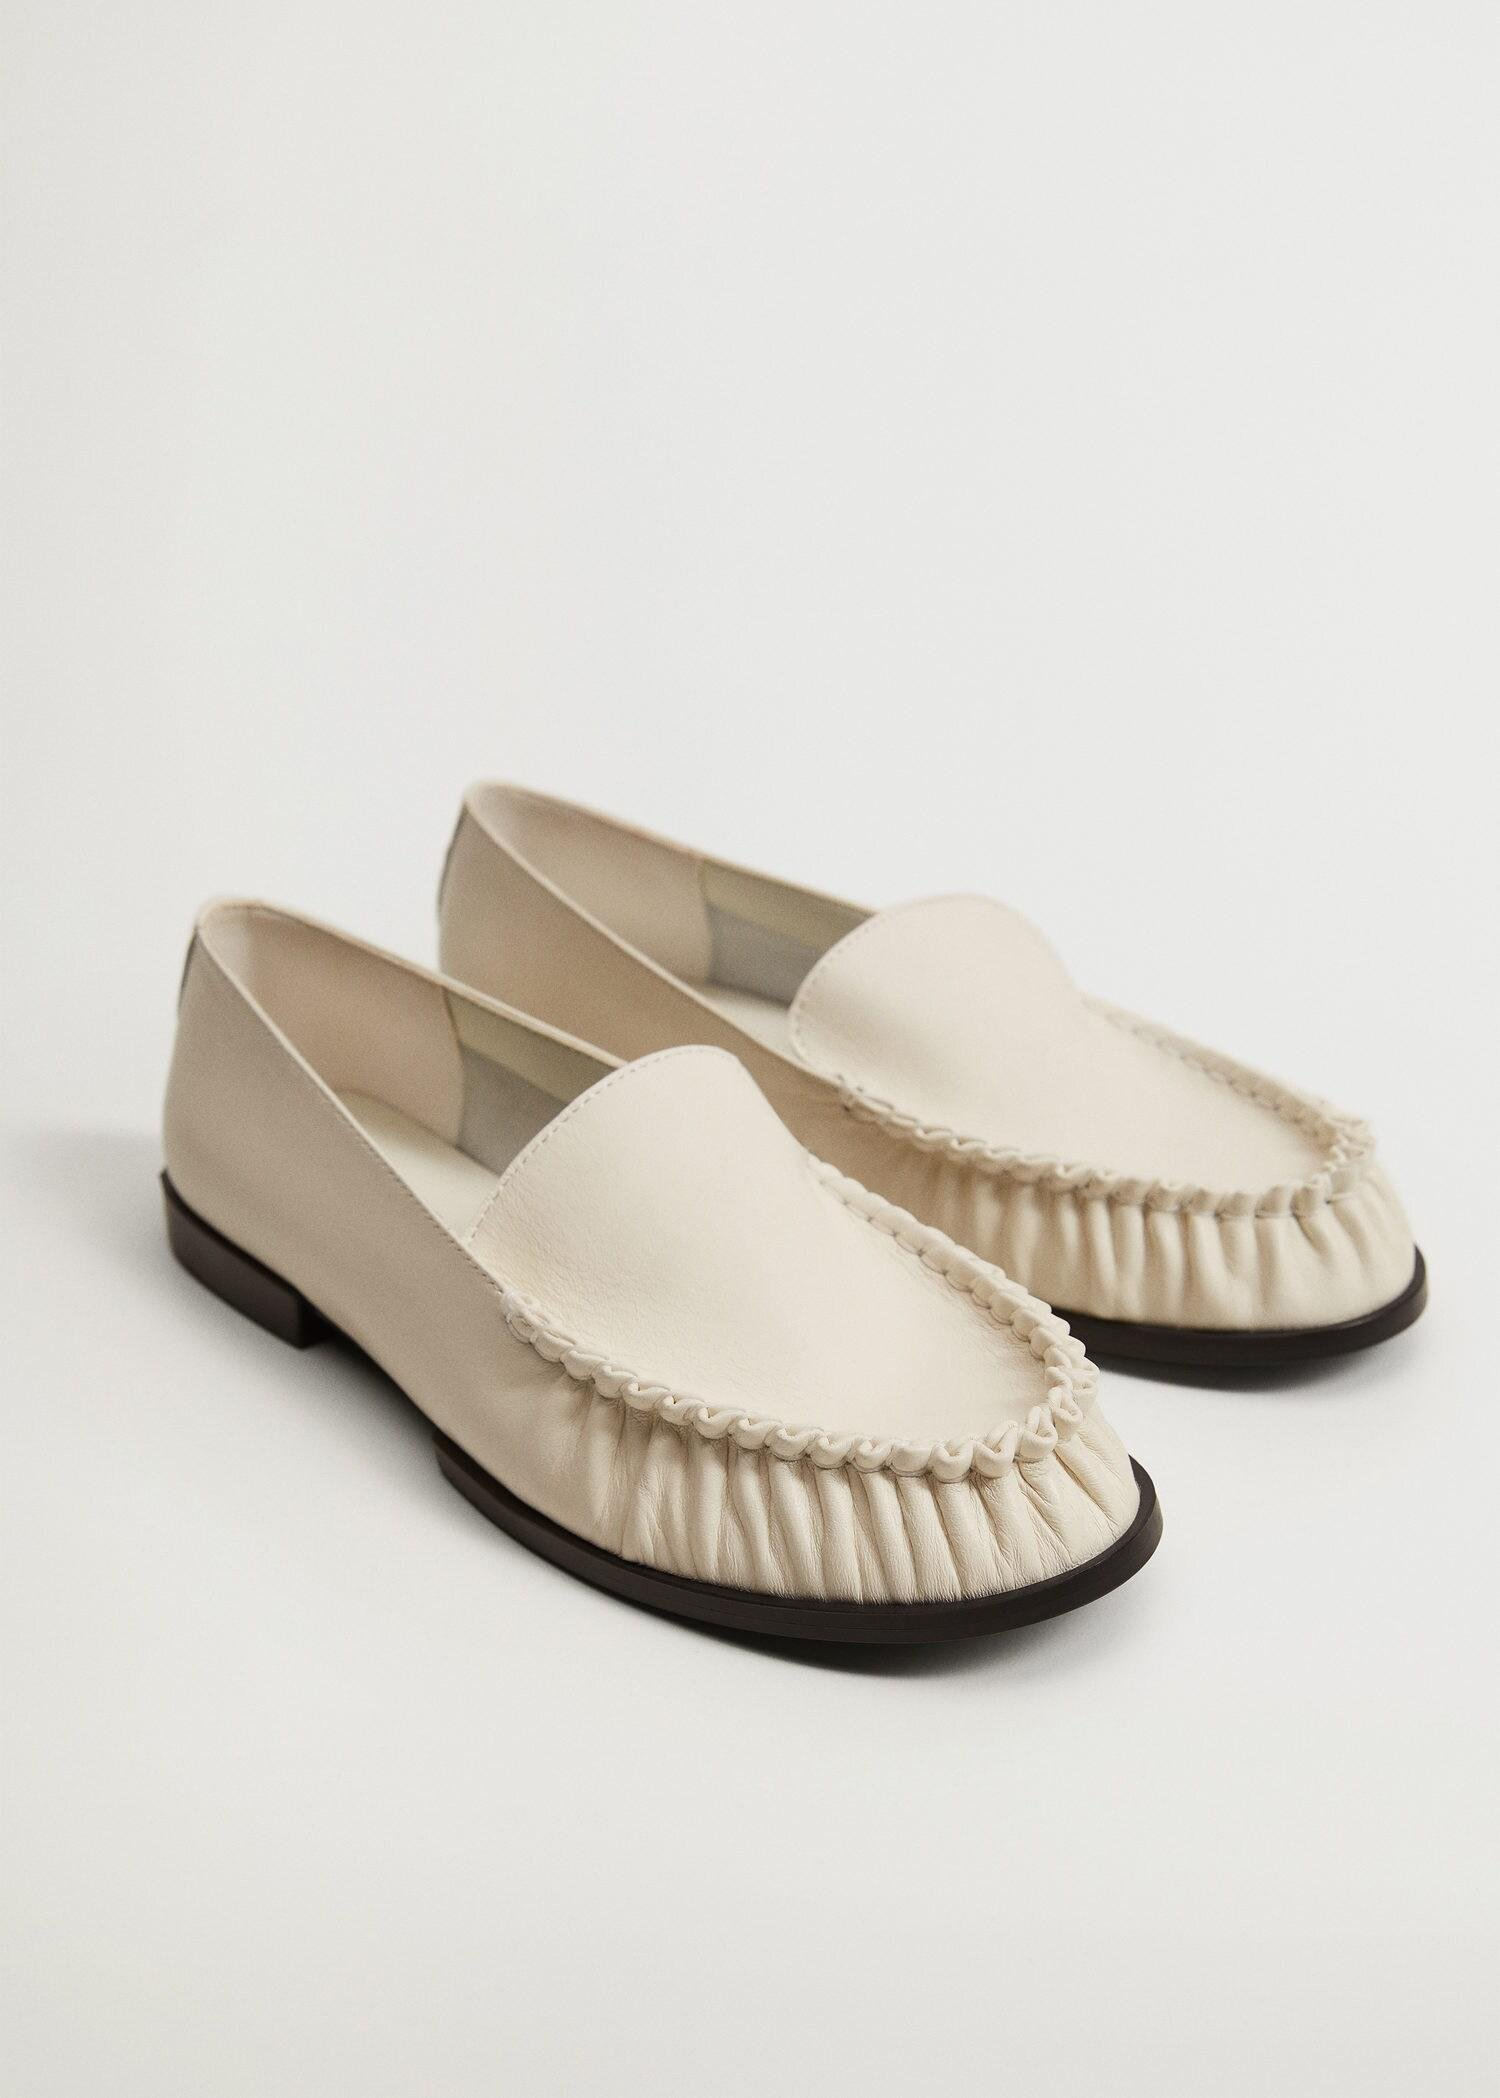 Gathered leather moccasin